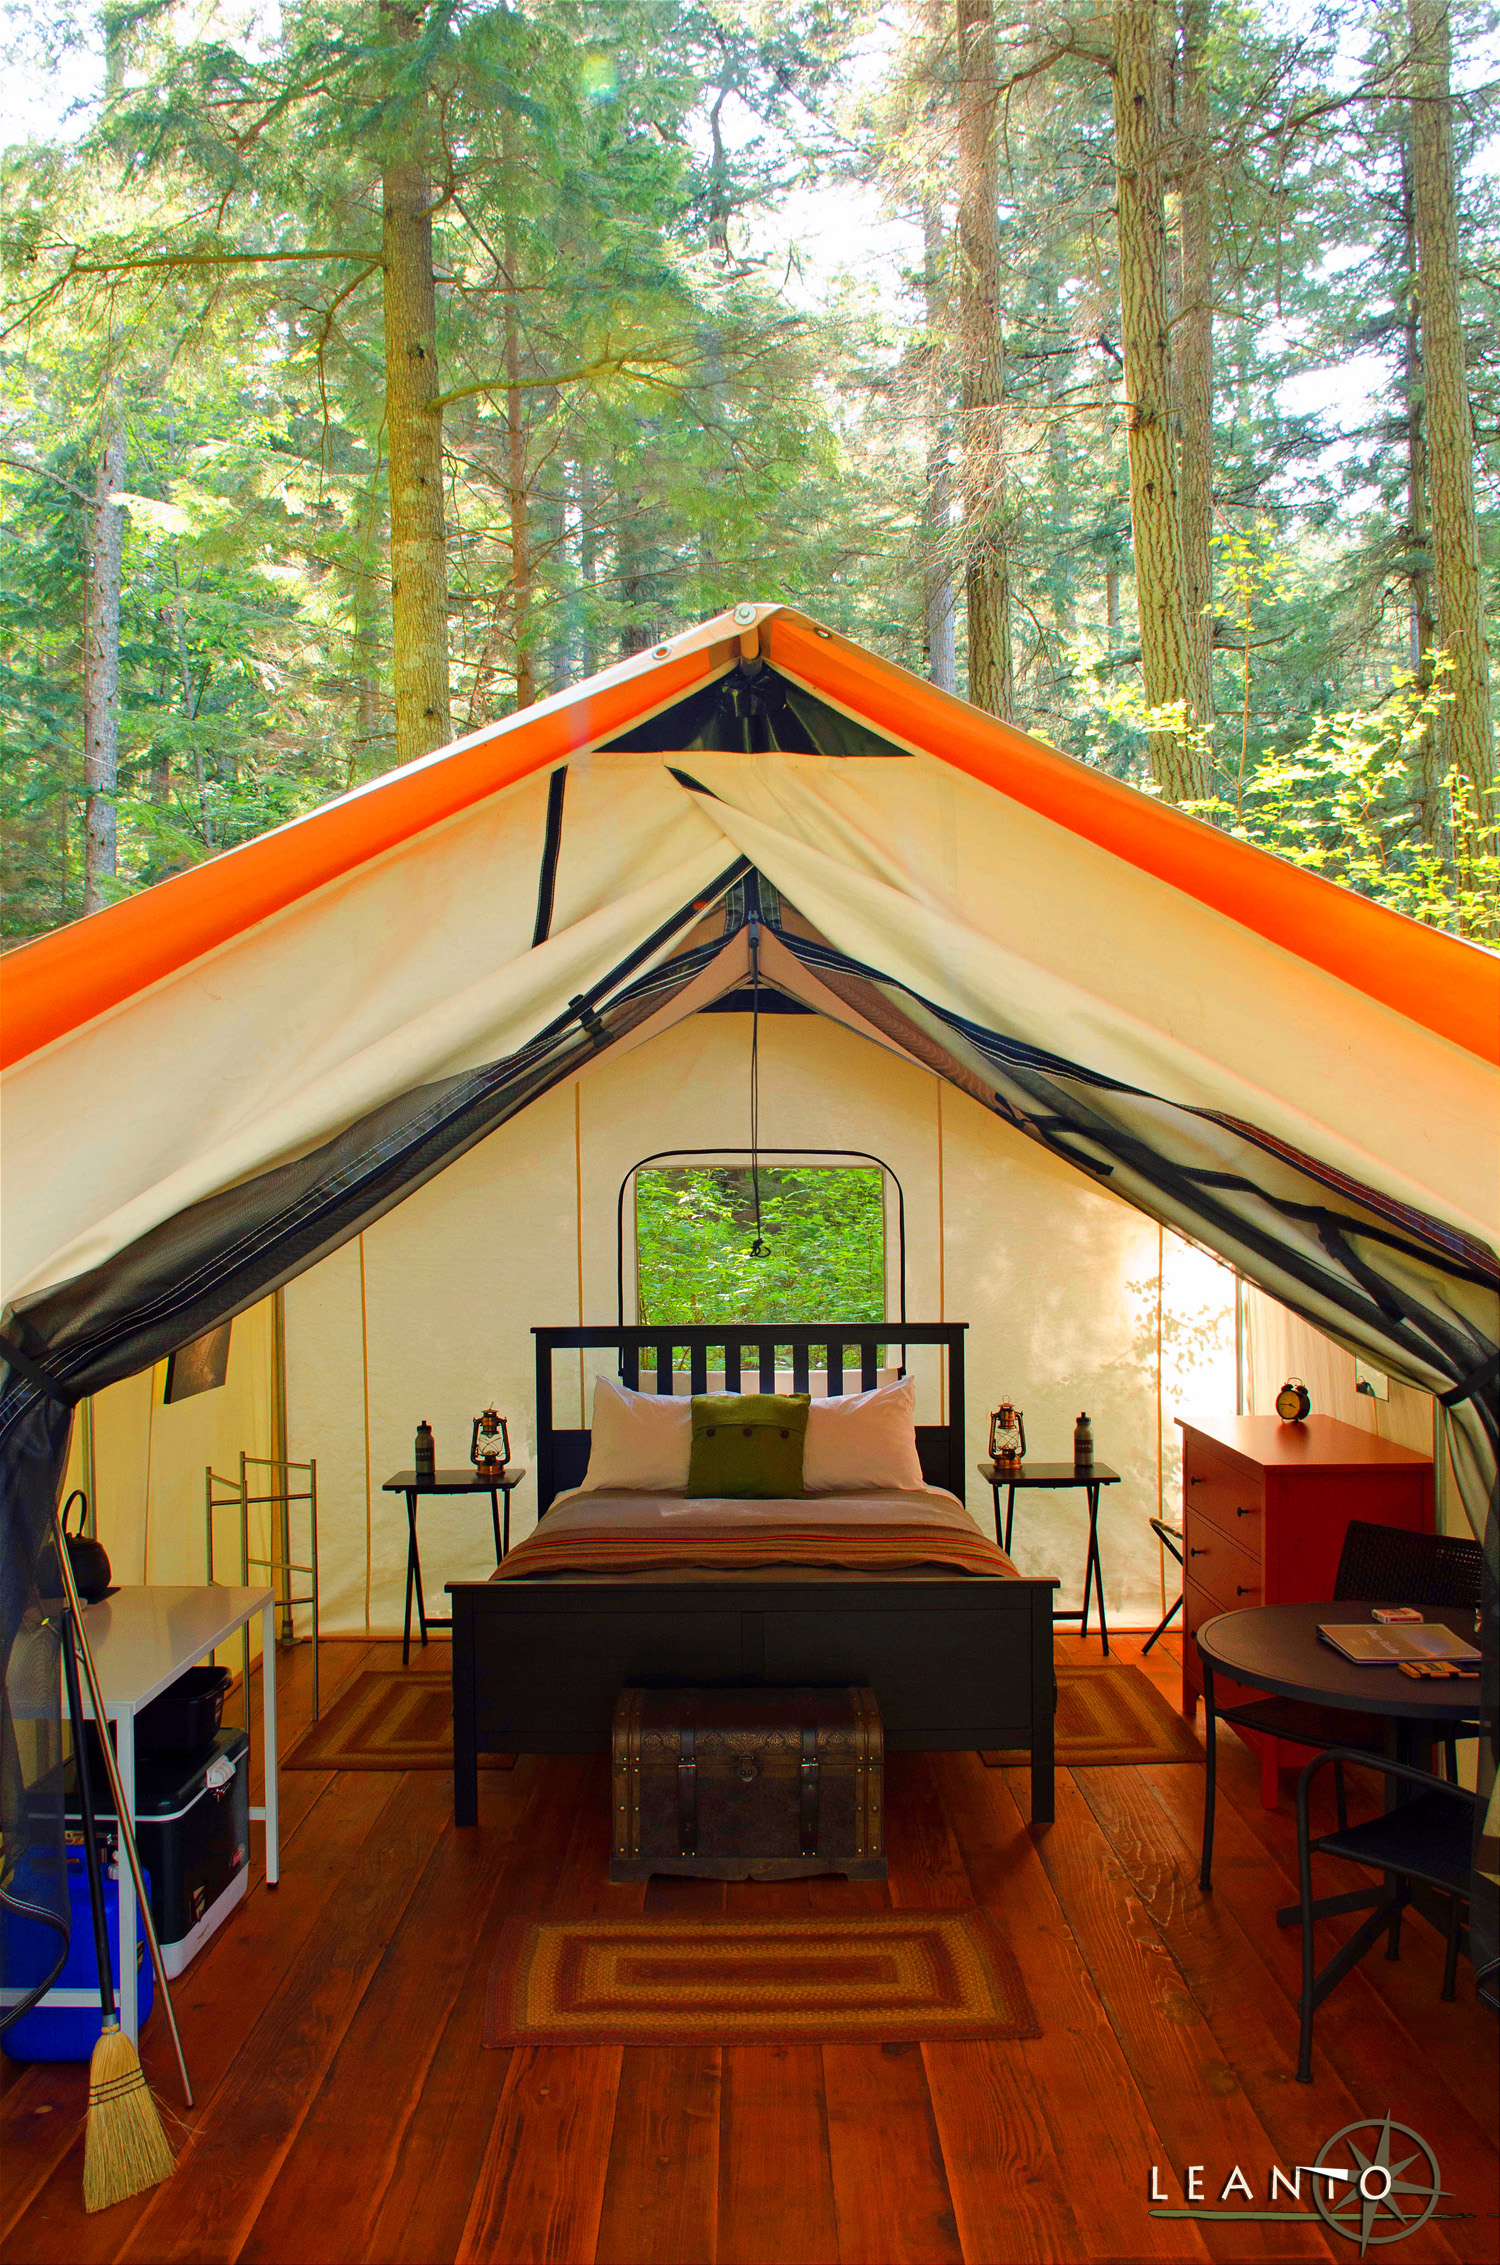 LEANTO Moran State Park Glamping Luxury Camping Orcas Island